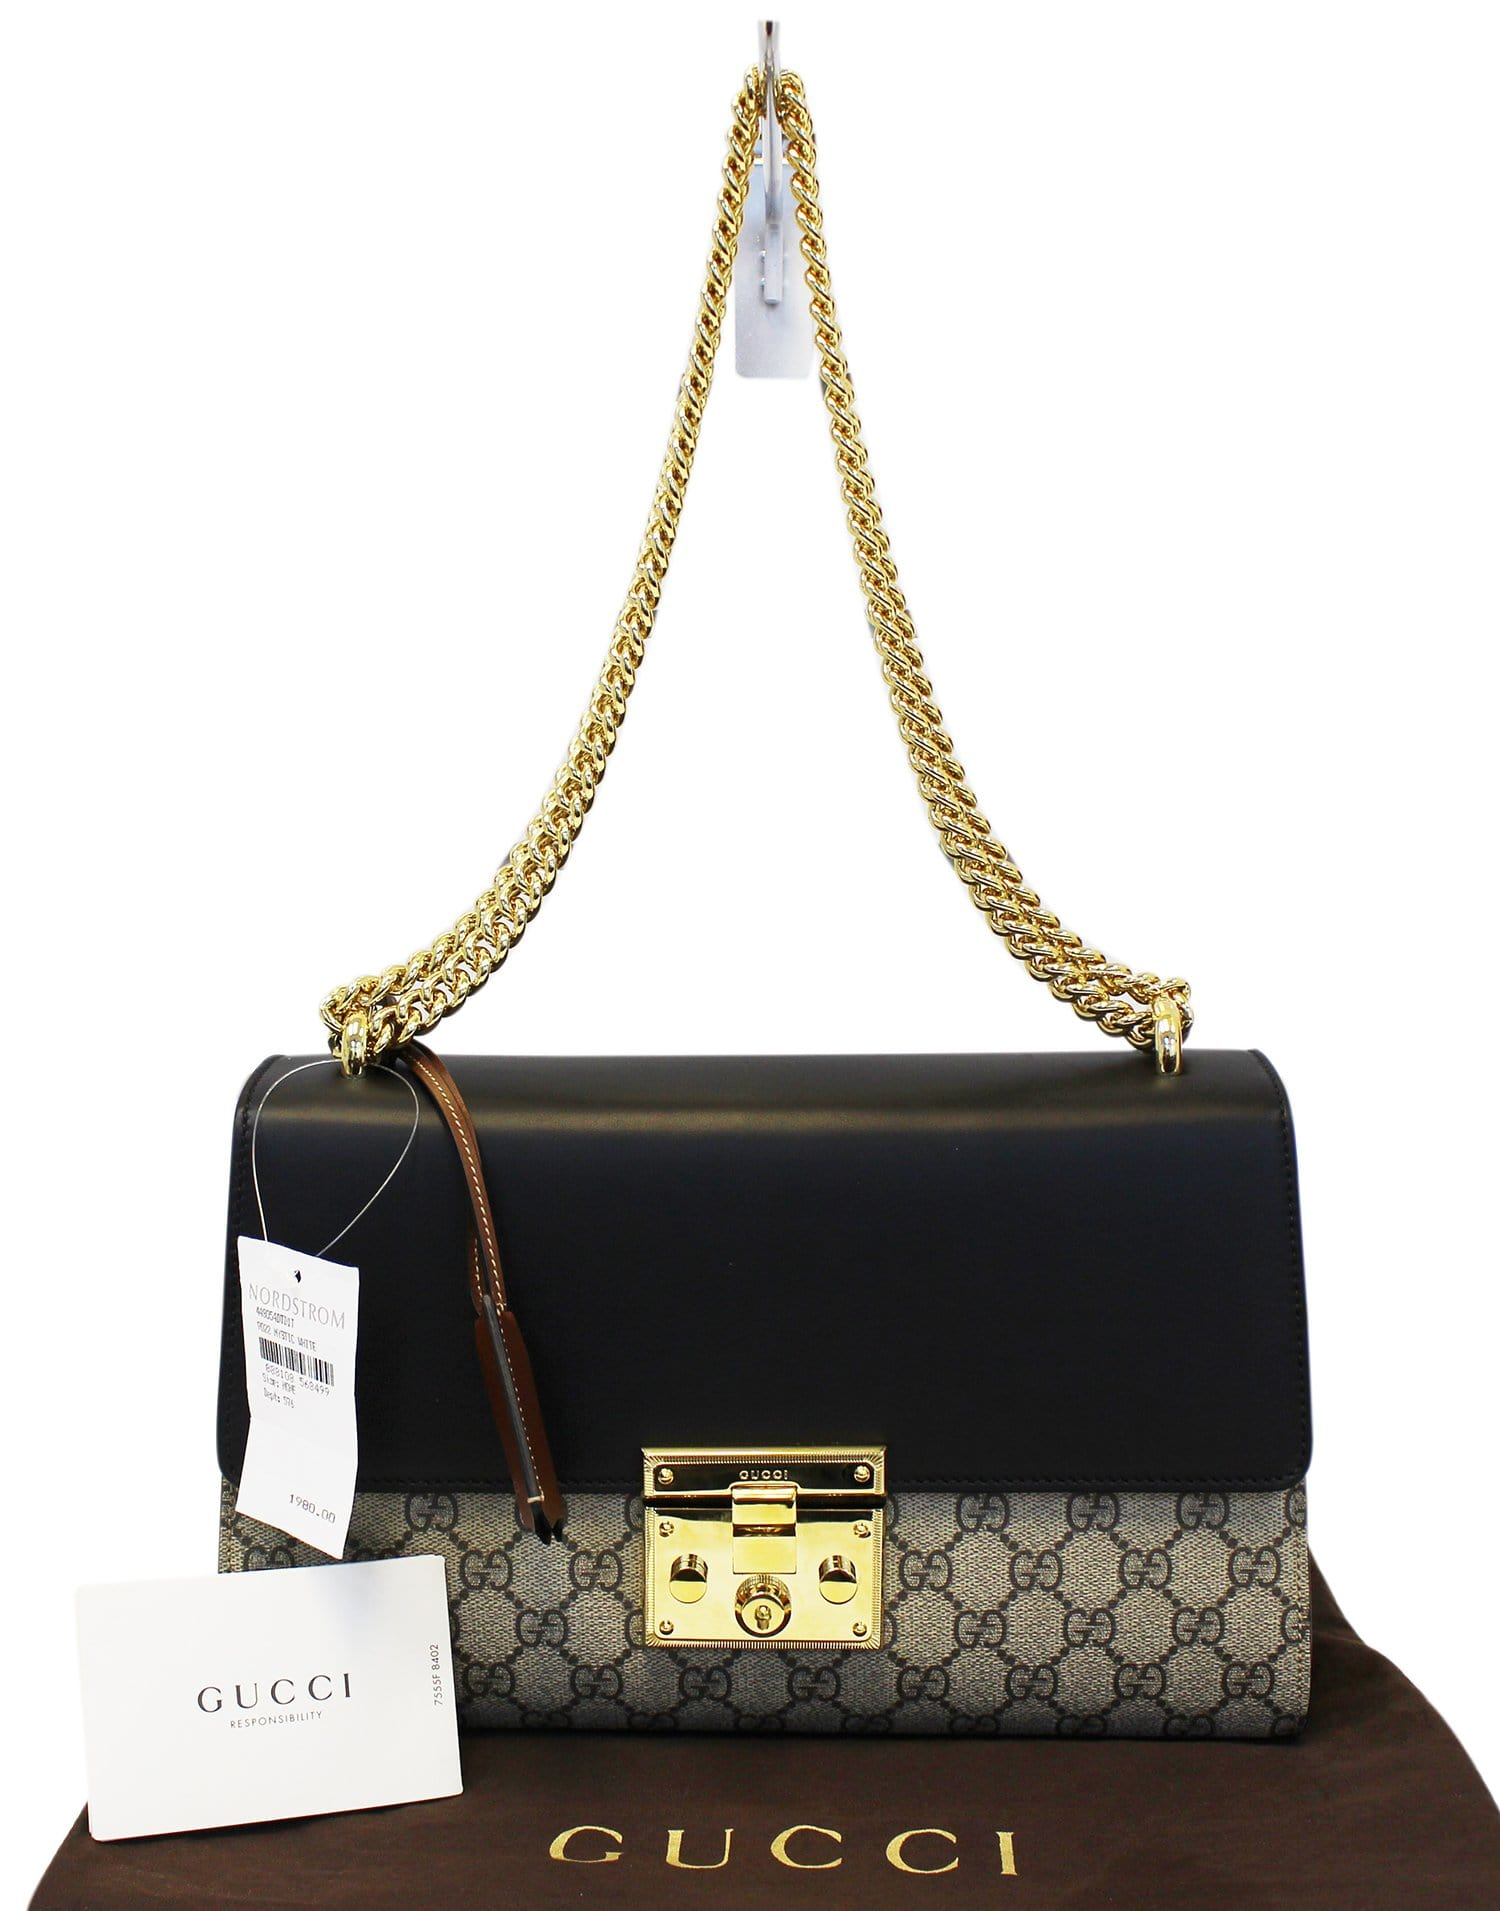 bc60ff7bdfeac2 GUCCI GG Supreme Beige/Black Padlock Medium Shoulder Bag